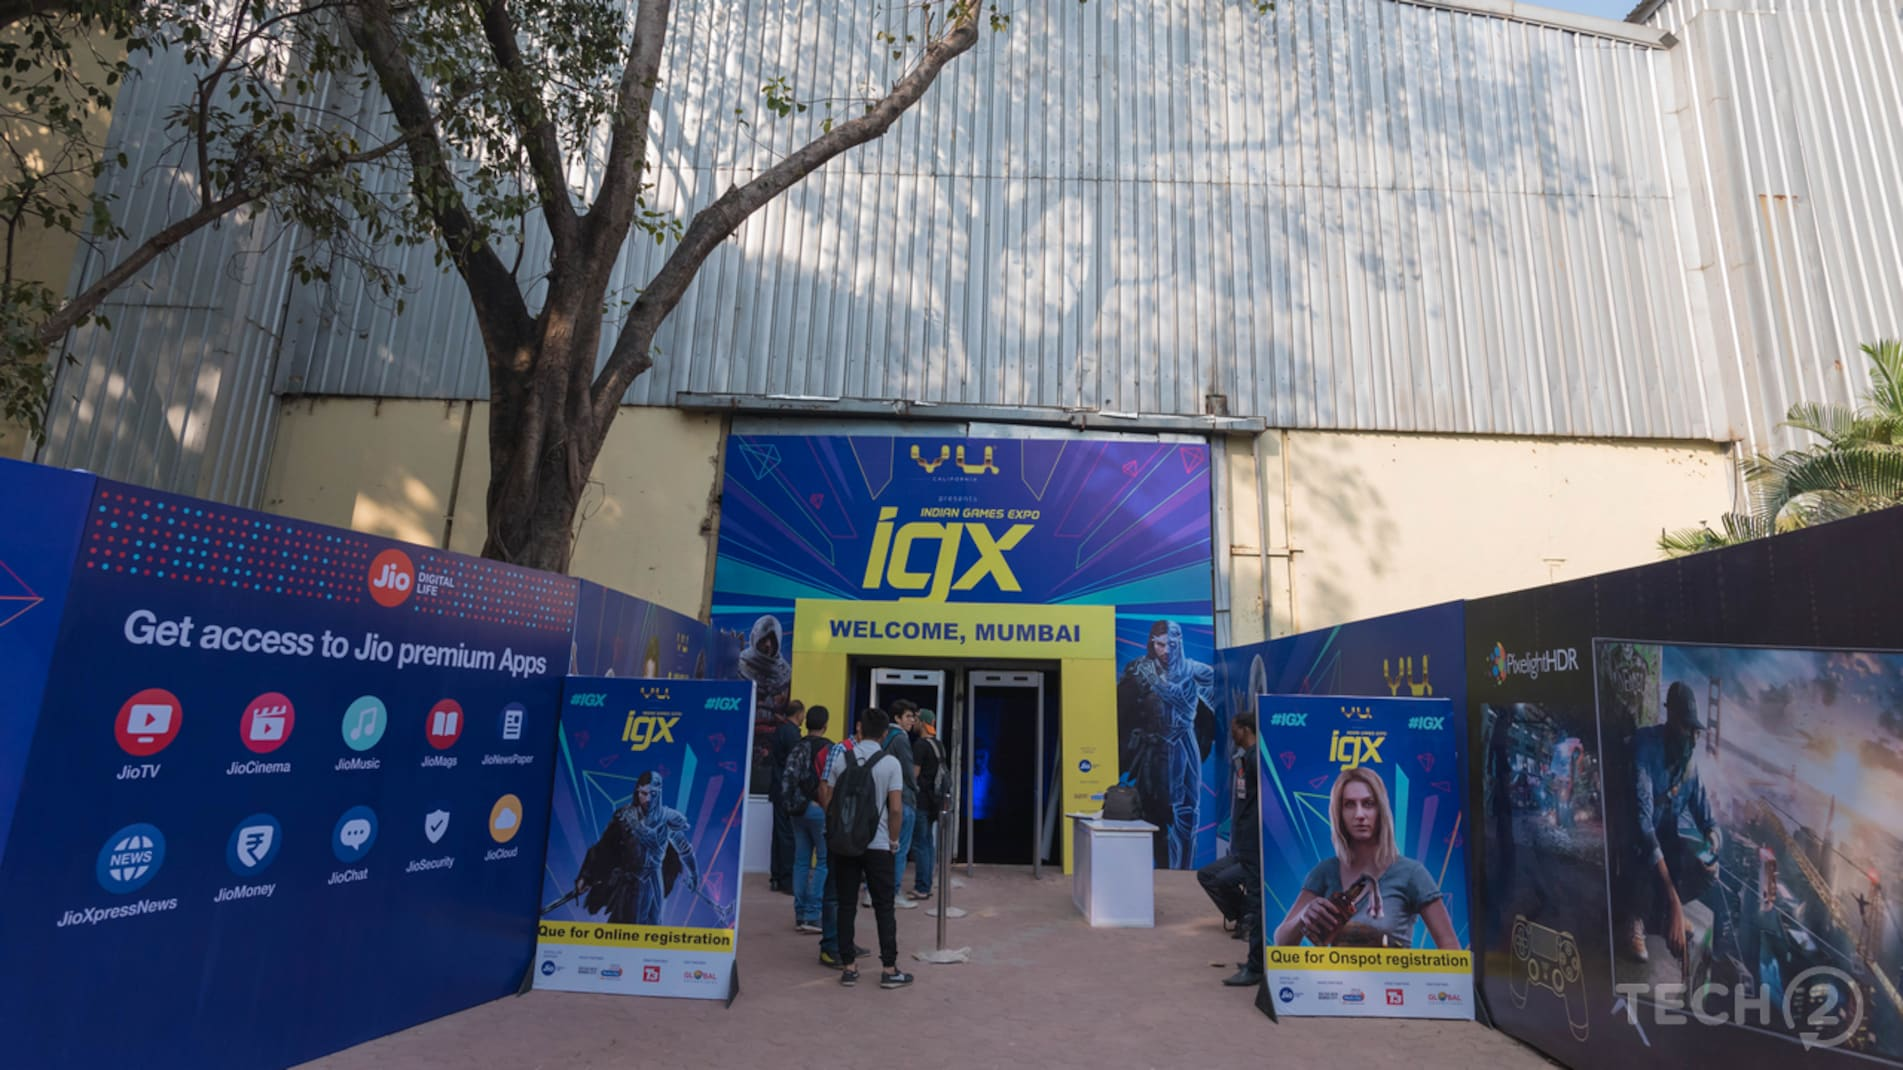 This time the Indian Games Expo was held at Bombay Exhibition Centre in Goregaon, Mumbai. Image: tech2/Rehan Hooda